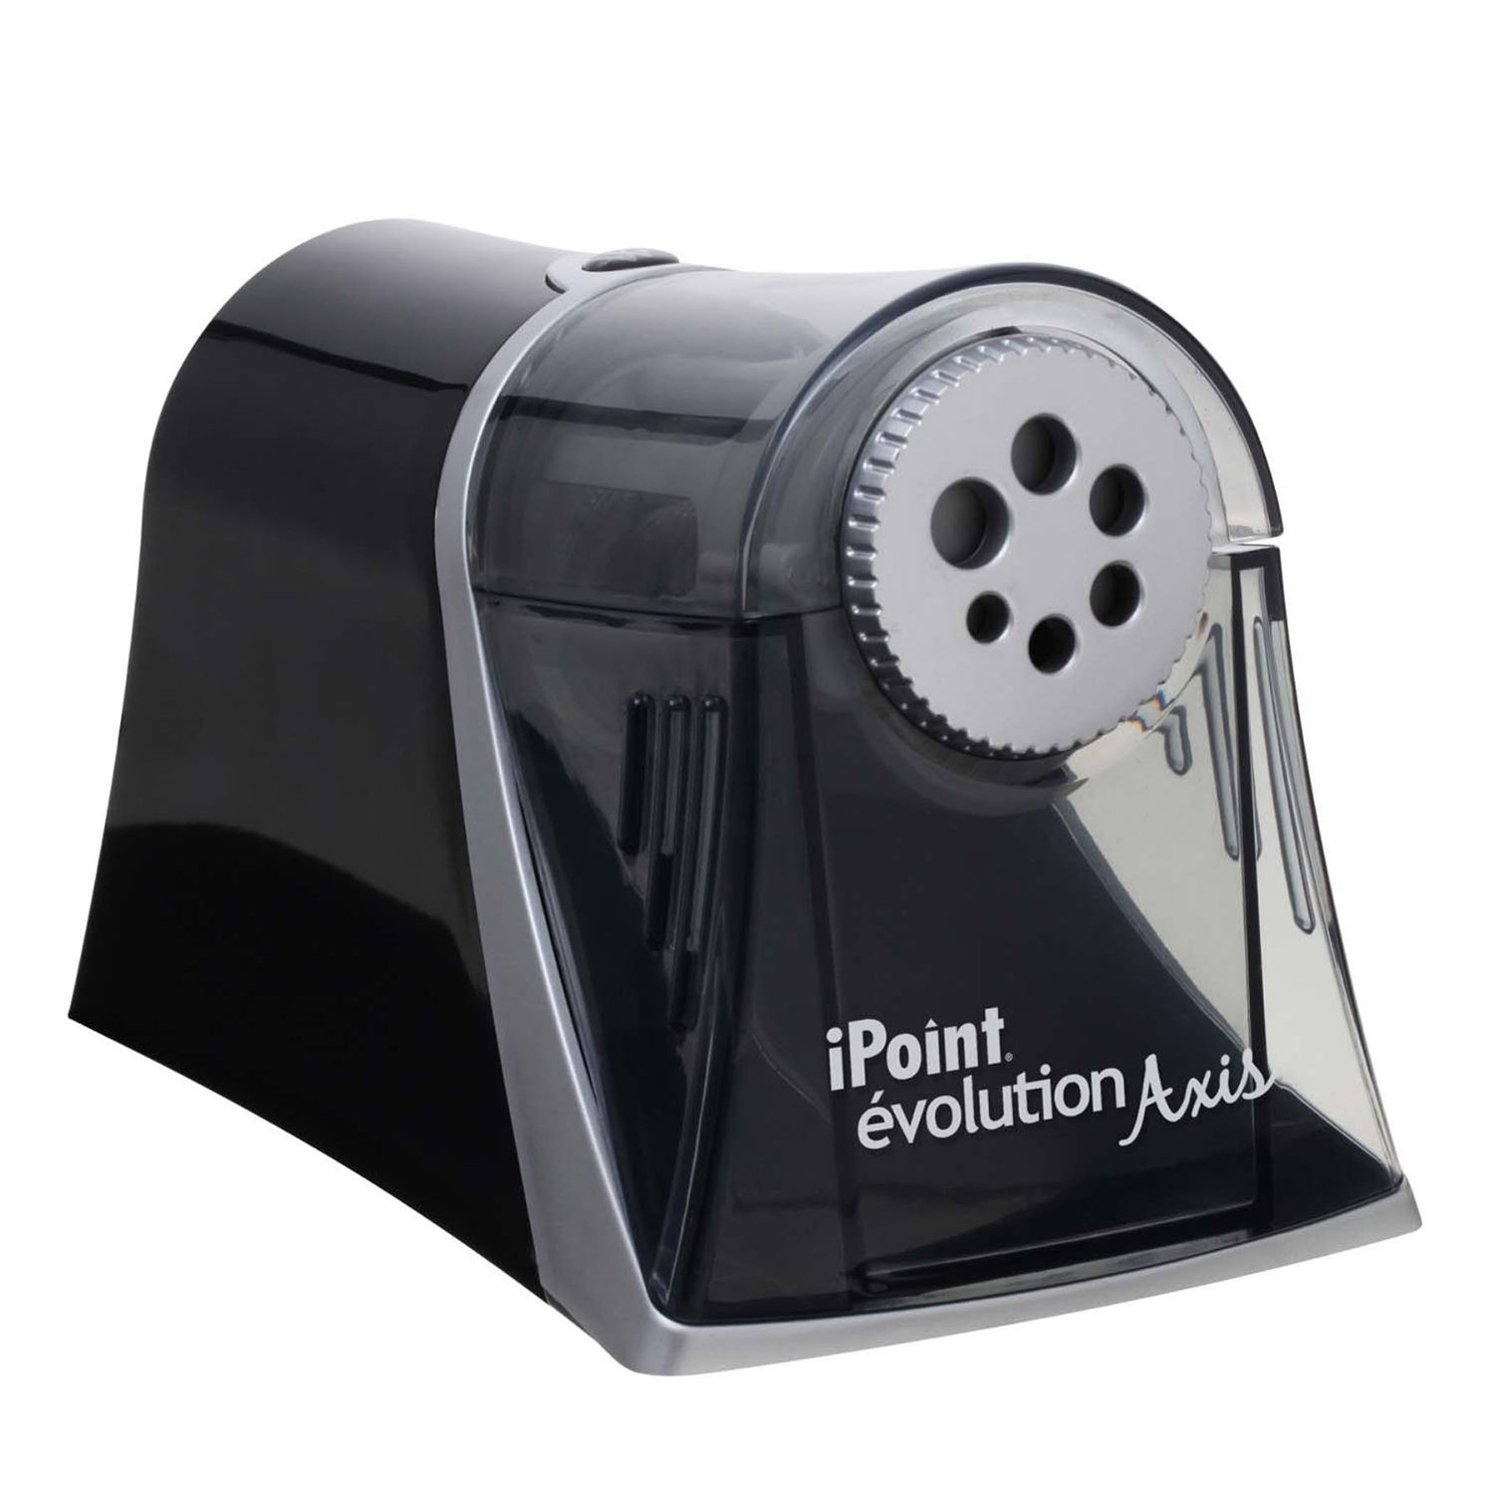 Westcott Axis iPoint Evolution Electric Heavy Duty Pencil Sharpener, Case of 6 (15509)